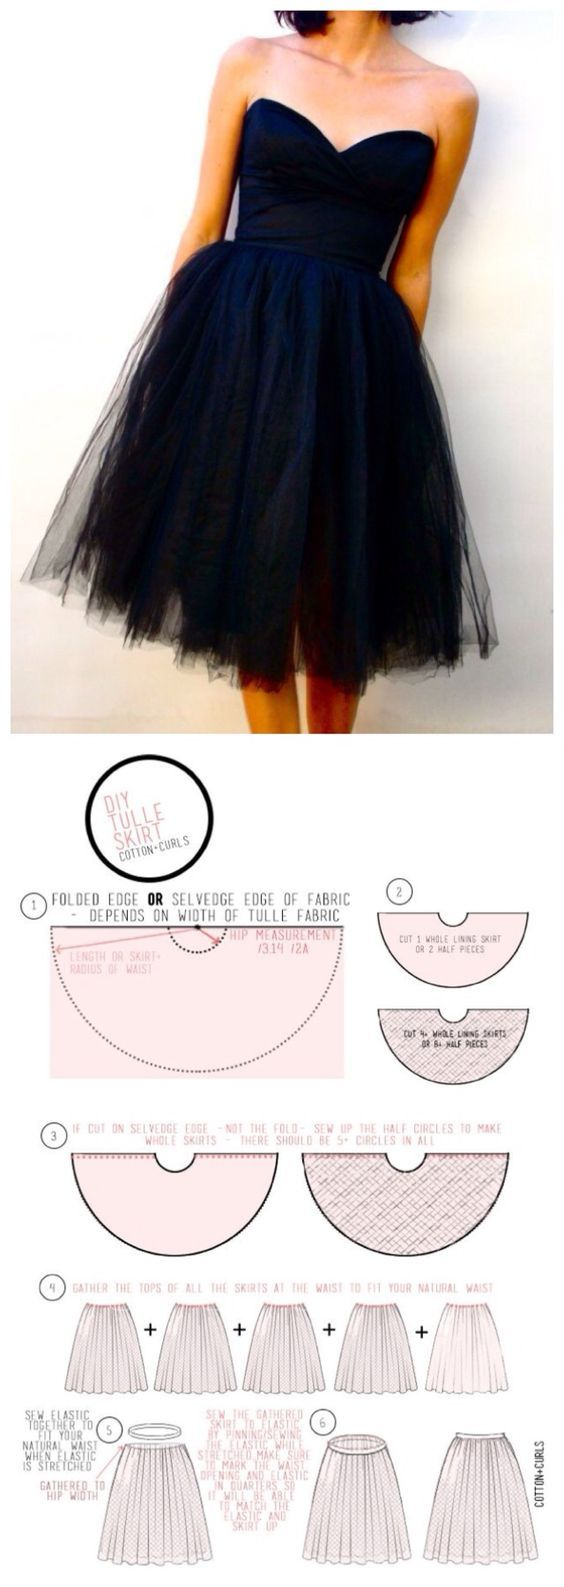 How to sew tulle skirt ~ Needs at least 9 layers. Stiff net gives you fullness; soft net gives you a romantic look